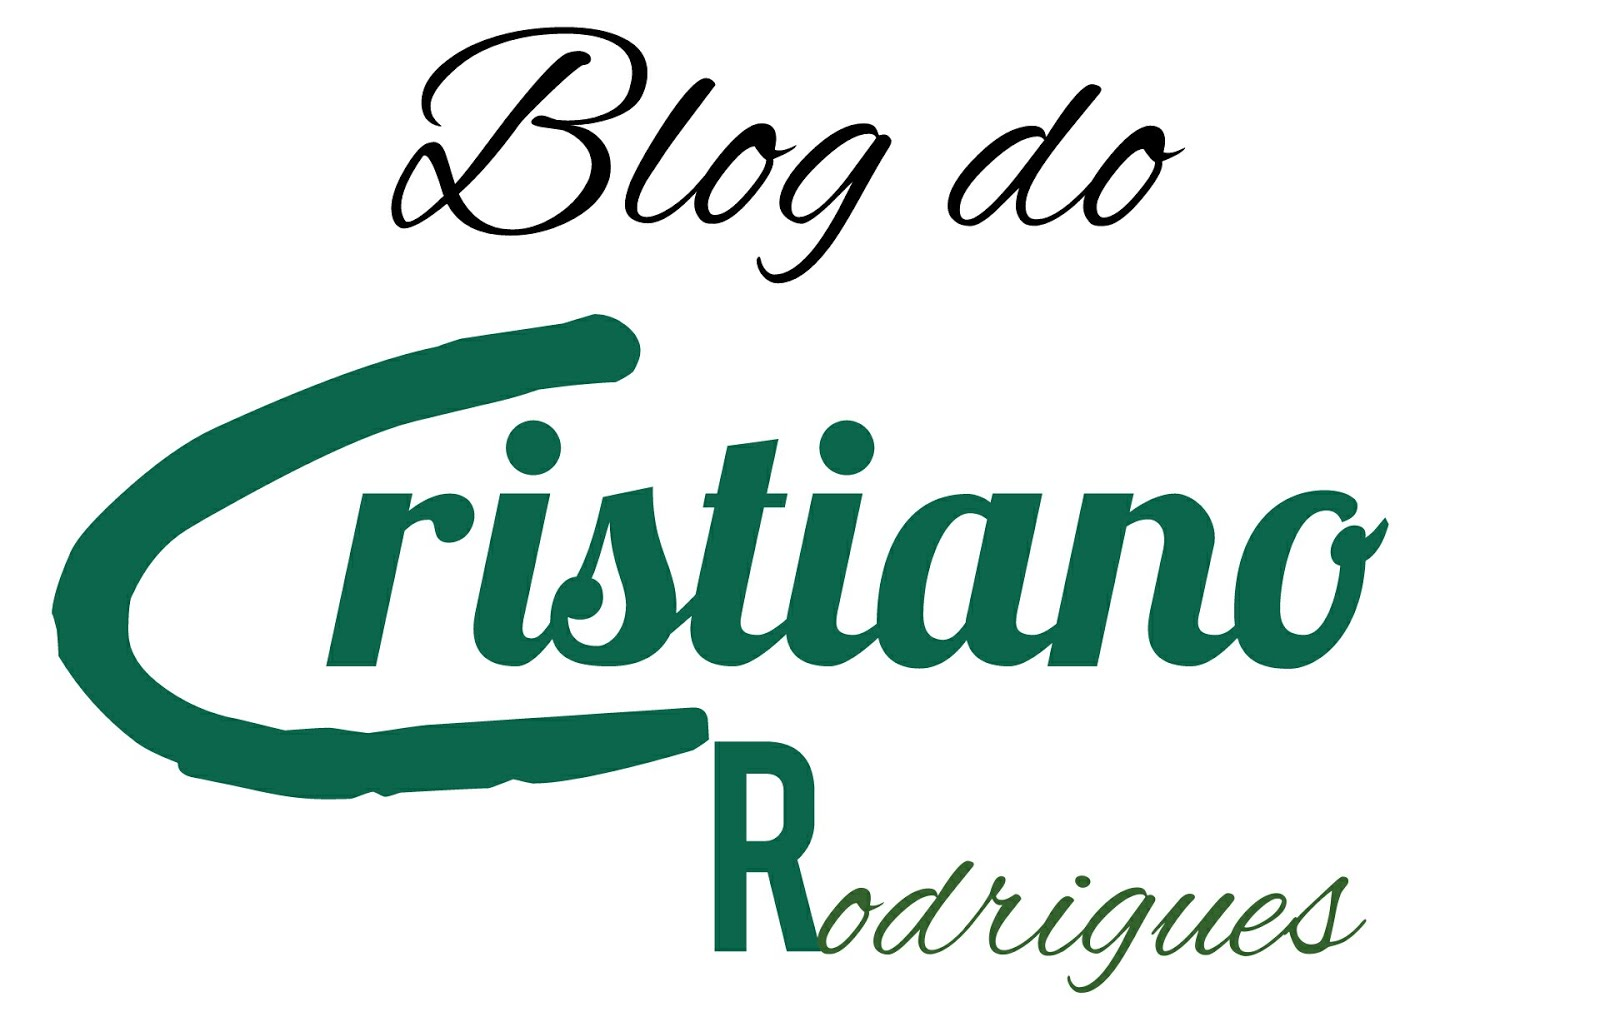 Blog do Cristiano Rodrigues